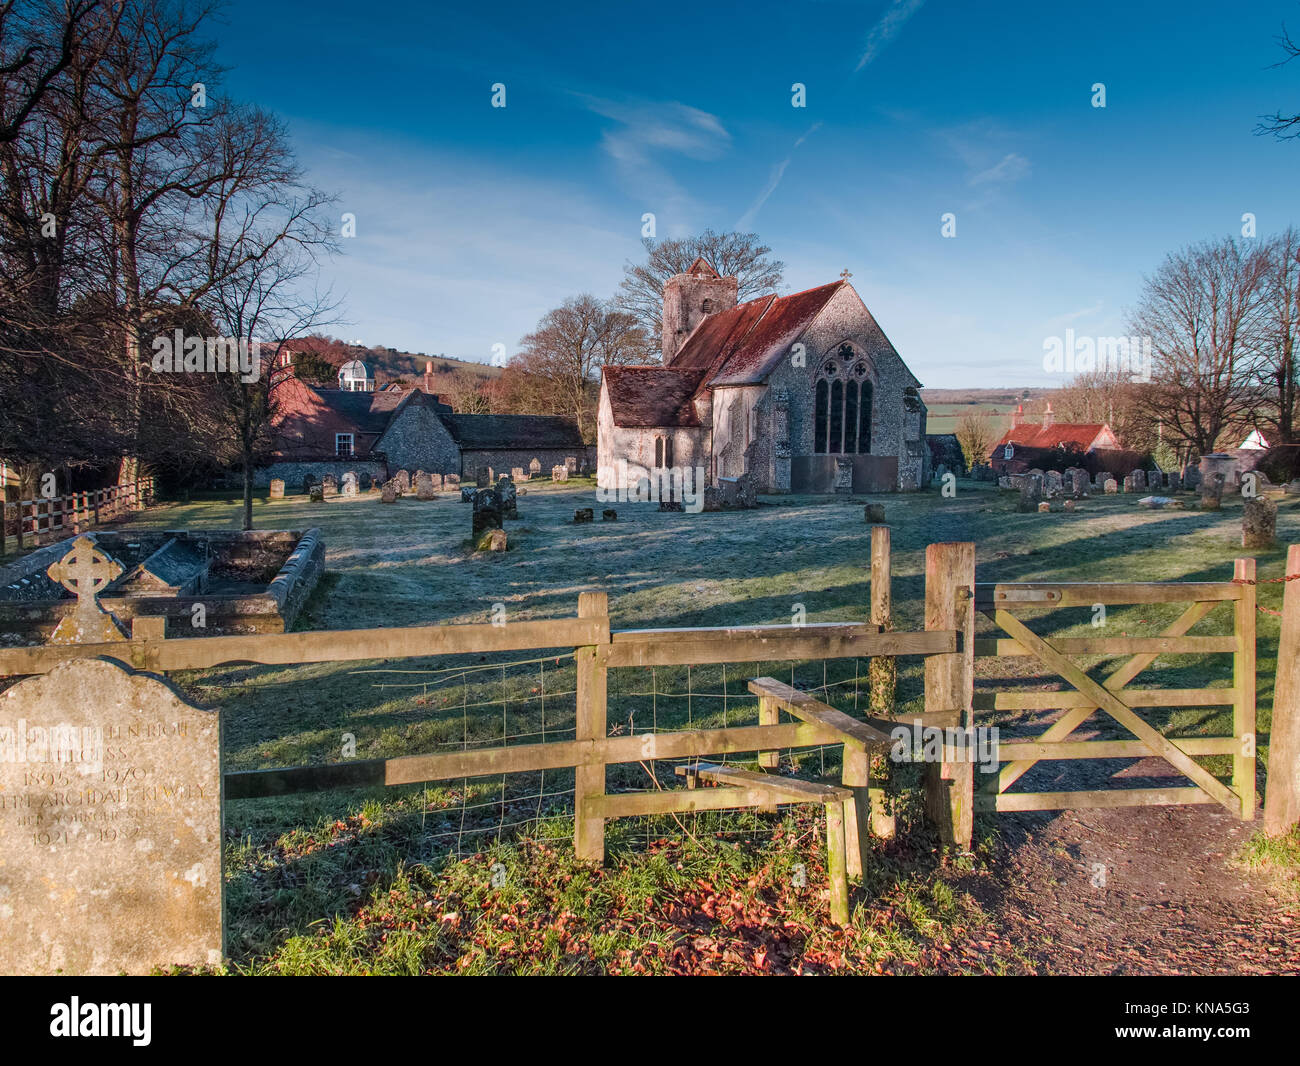 St Michael and All Saints Church, Chalton Hampshire - sunrise on a frosty morning - 13th Century Chancel - Hundred - Stock Image